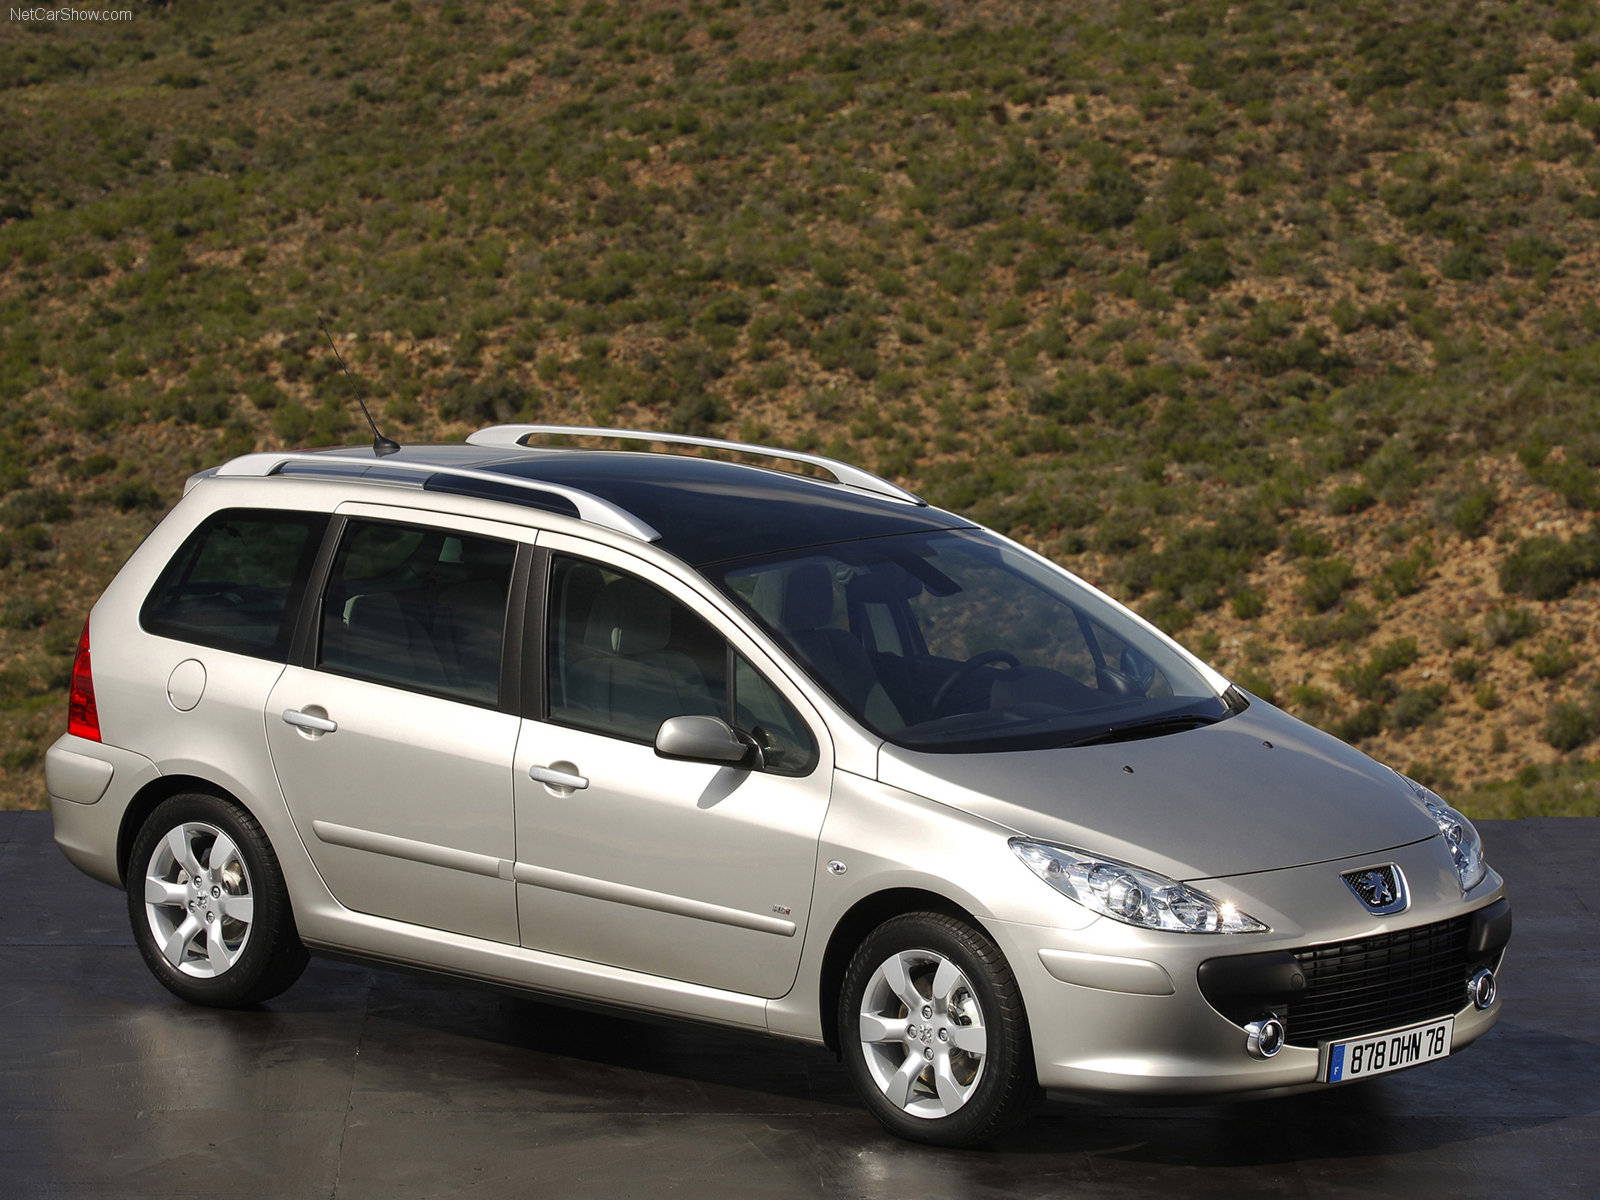 peugeot 307 station wagon 1 6 hdi 90 hp. Black Bedroom Furniture Sets. Home Design Ideas